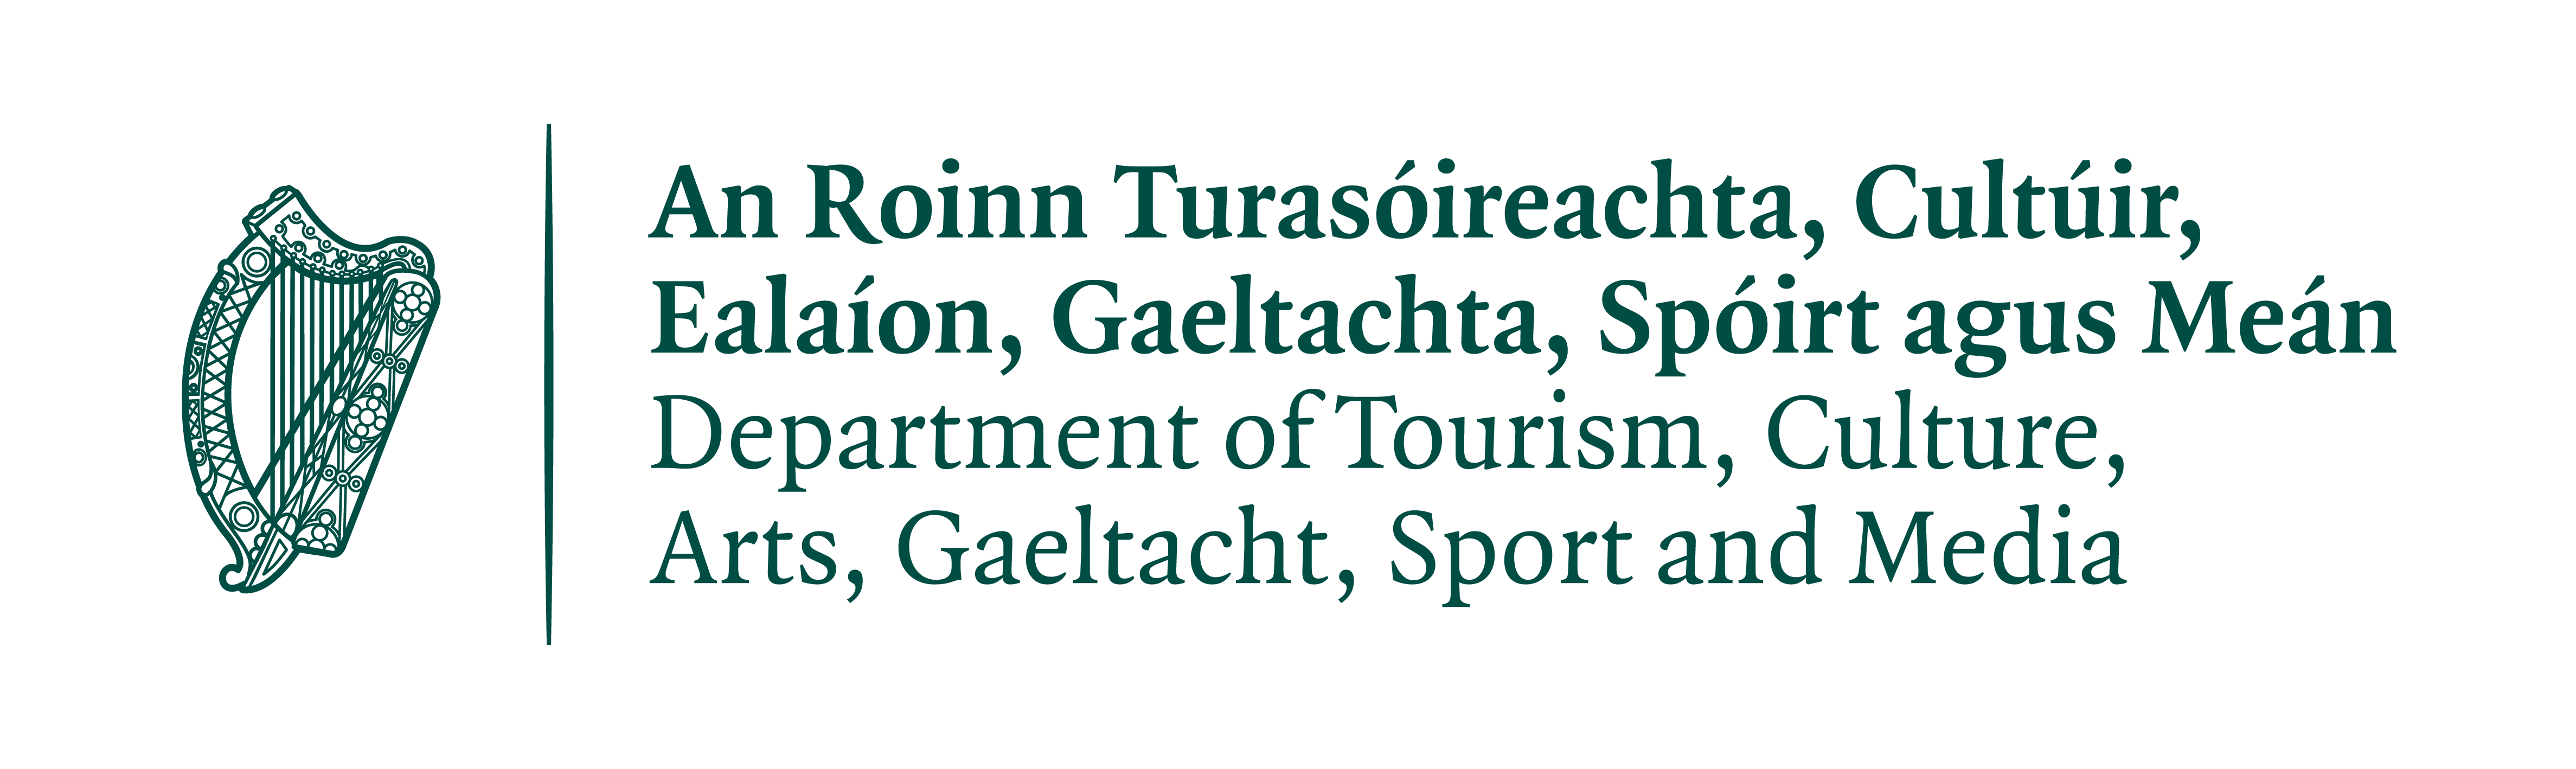 Department of Tourism, Culture, Arts, Gaeltacht, Sport and Media